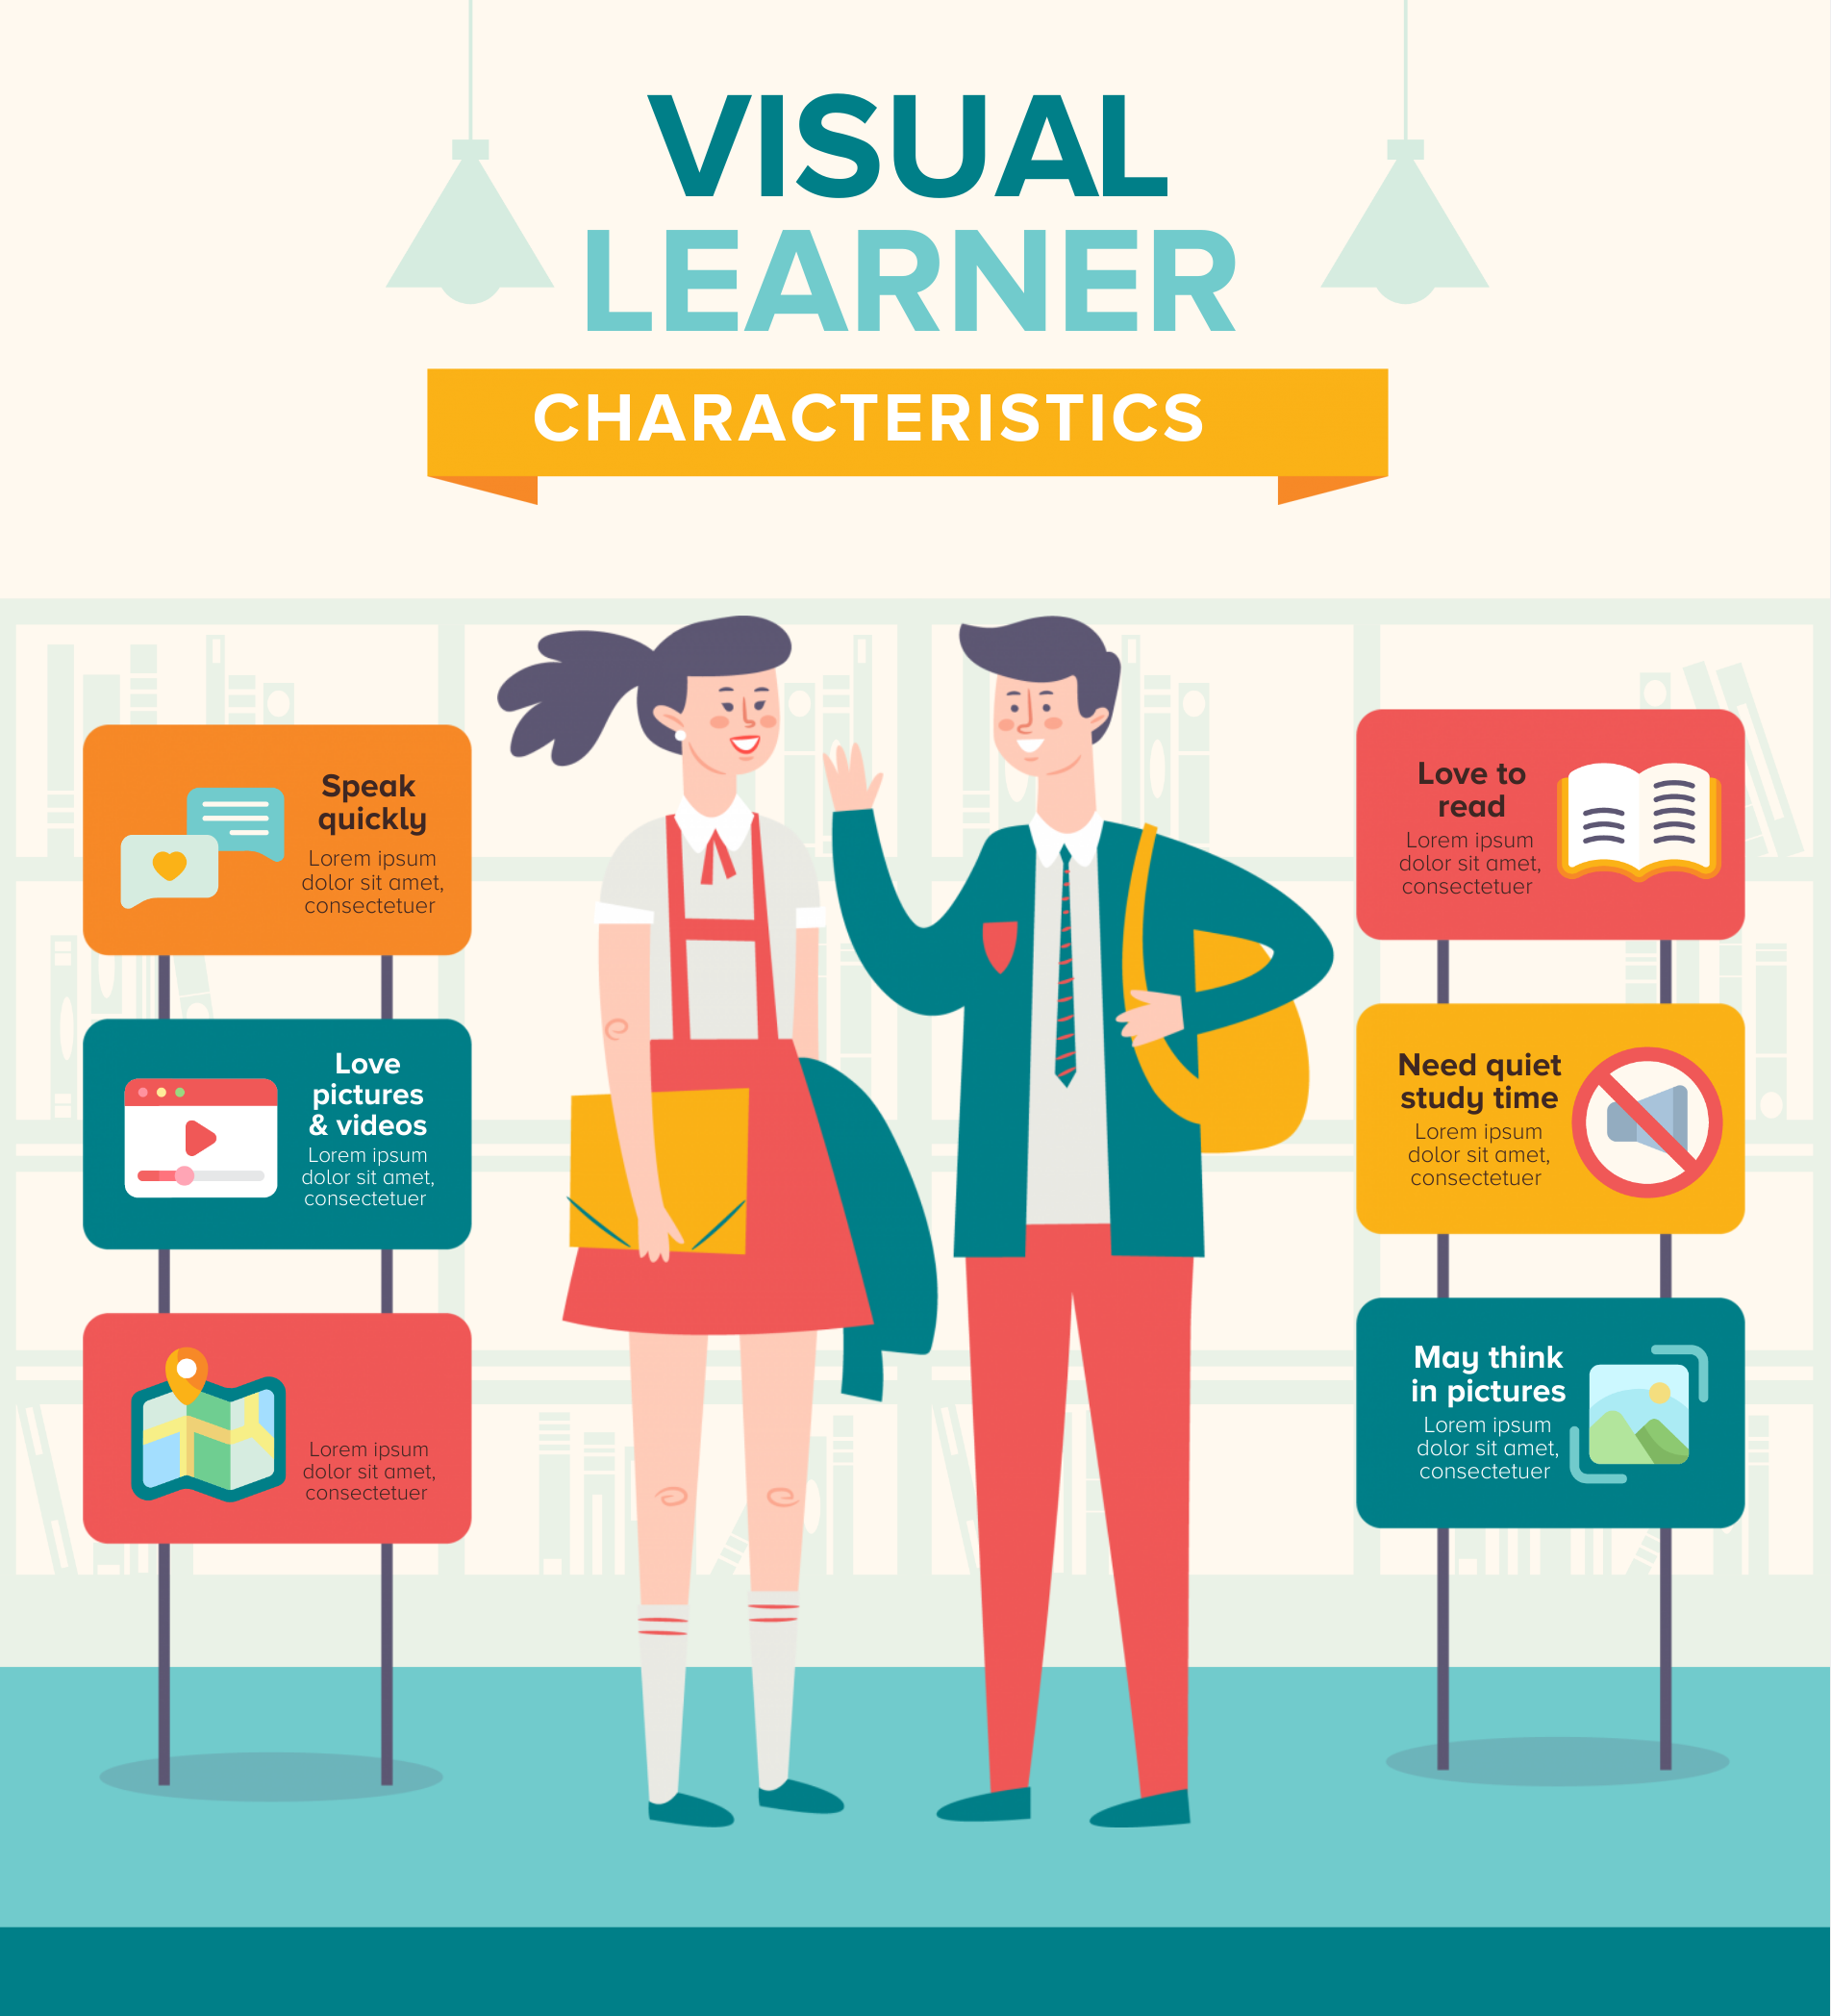 an infographic about visual learners